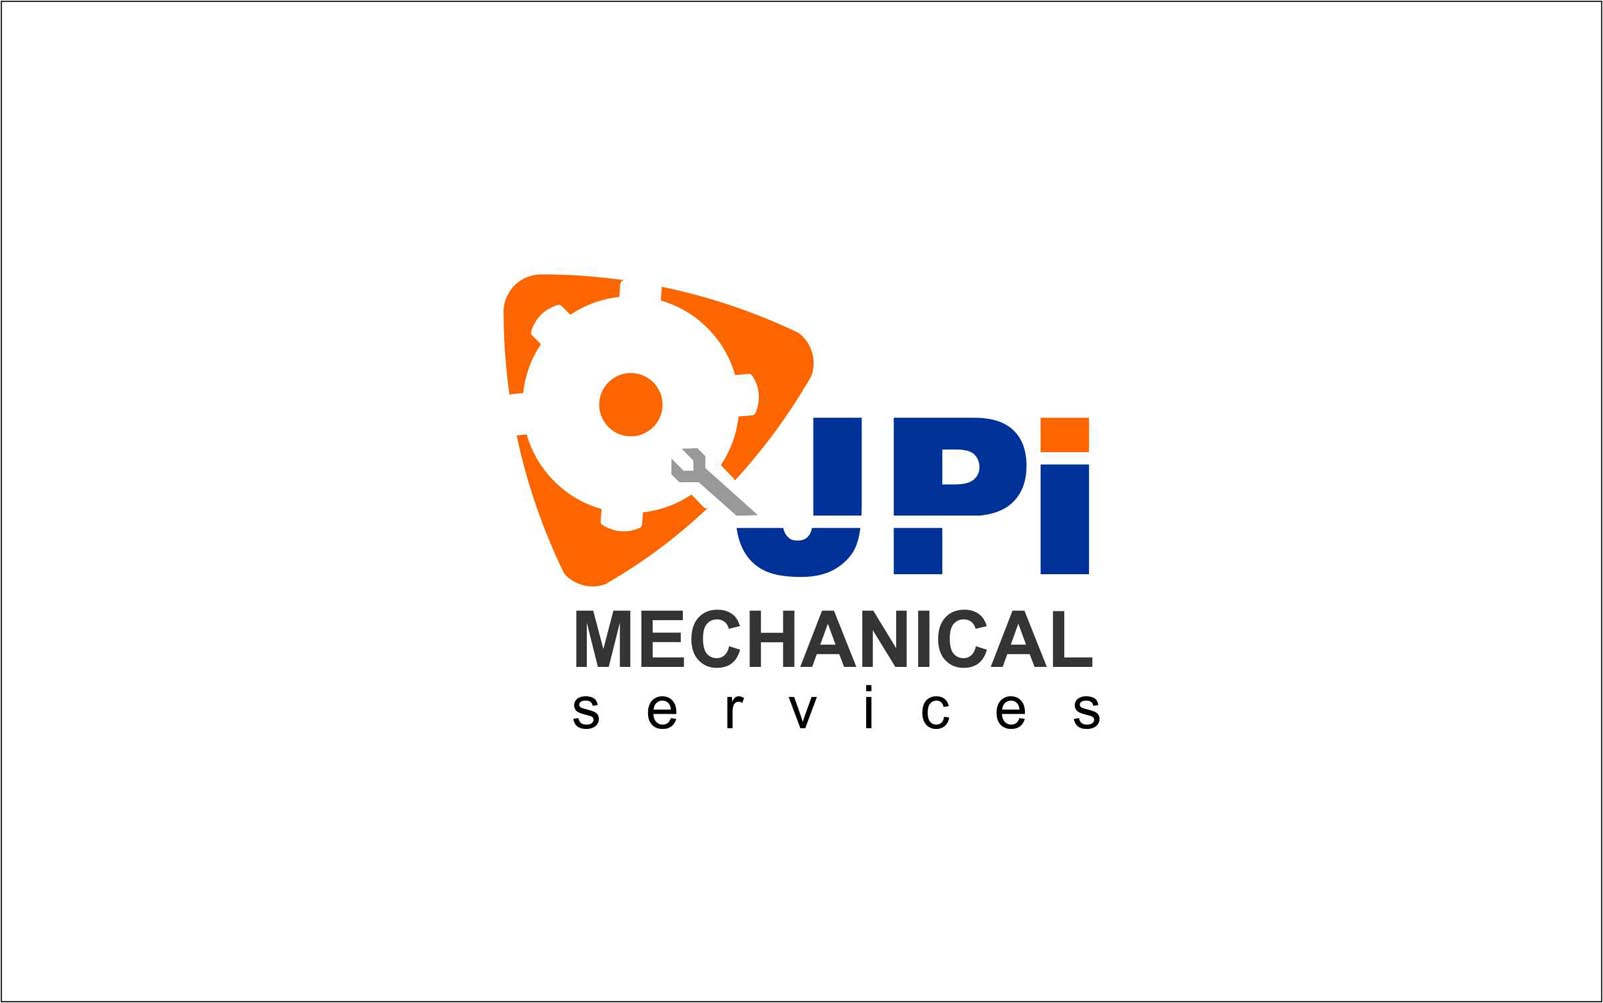 Logo Design by Niraj Dhimmar - Entry No. 112 in the Logo Design Contest Inspiring Logo Design for JPI Mecanical Services.